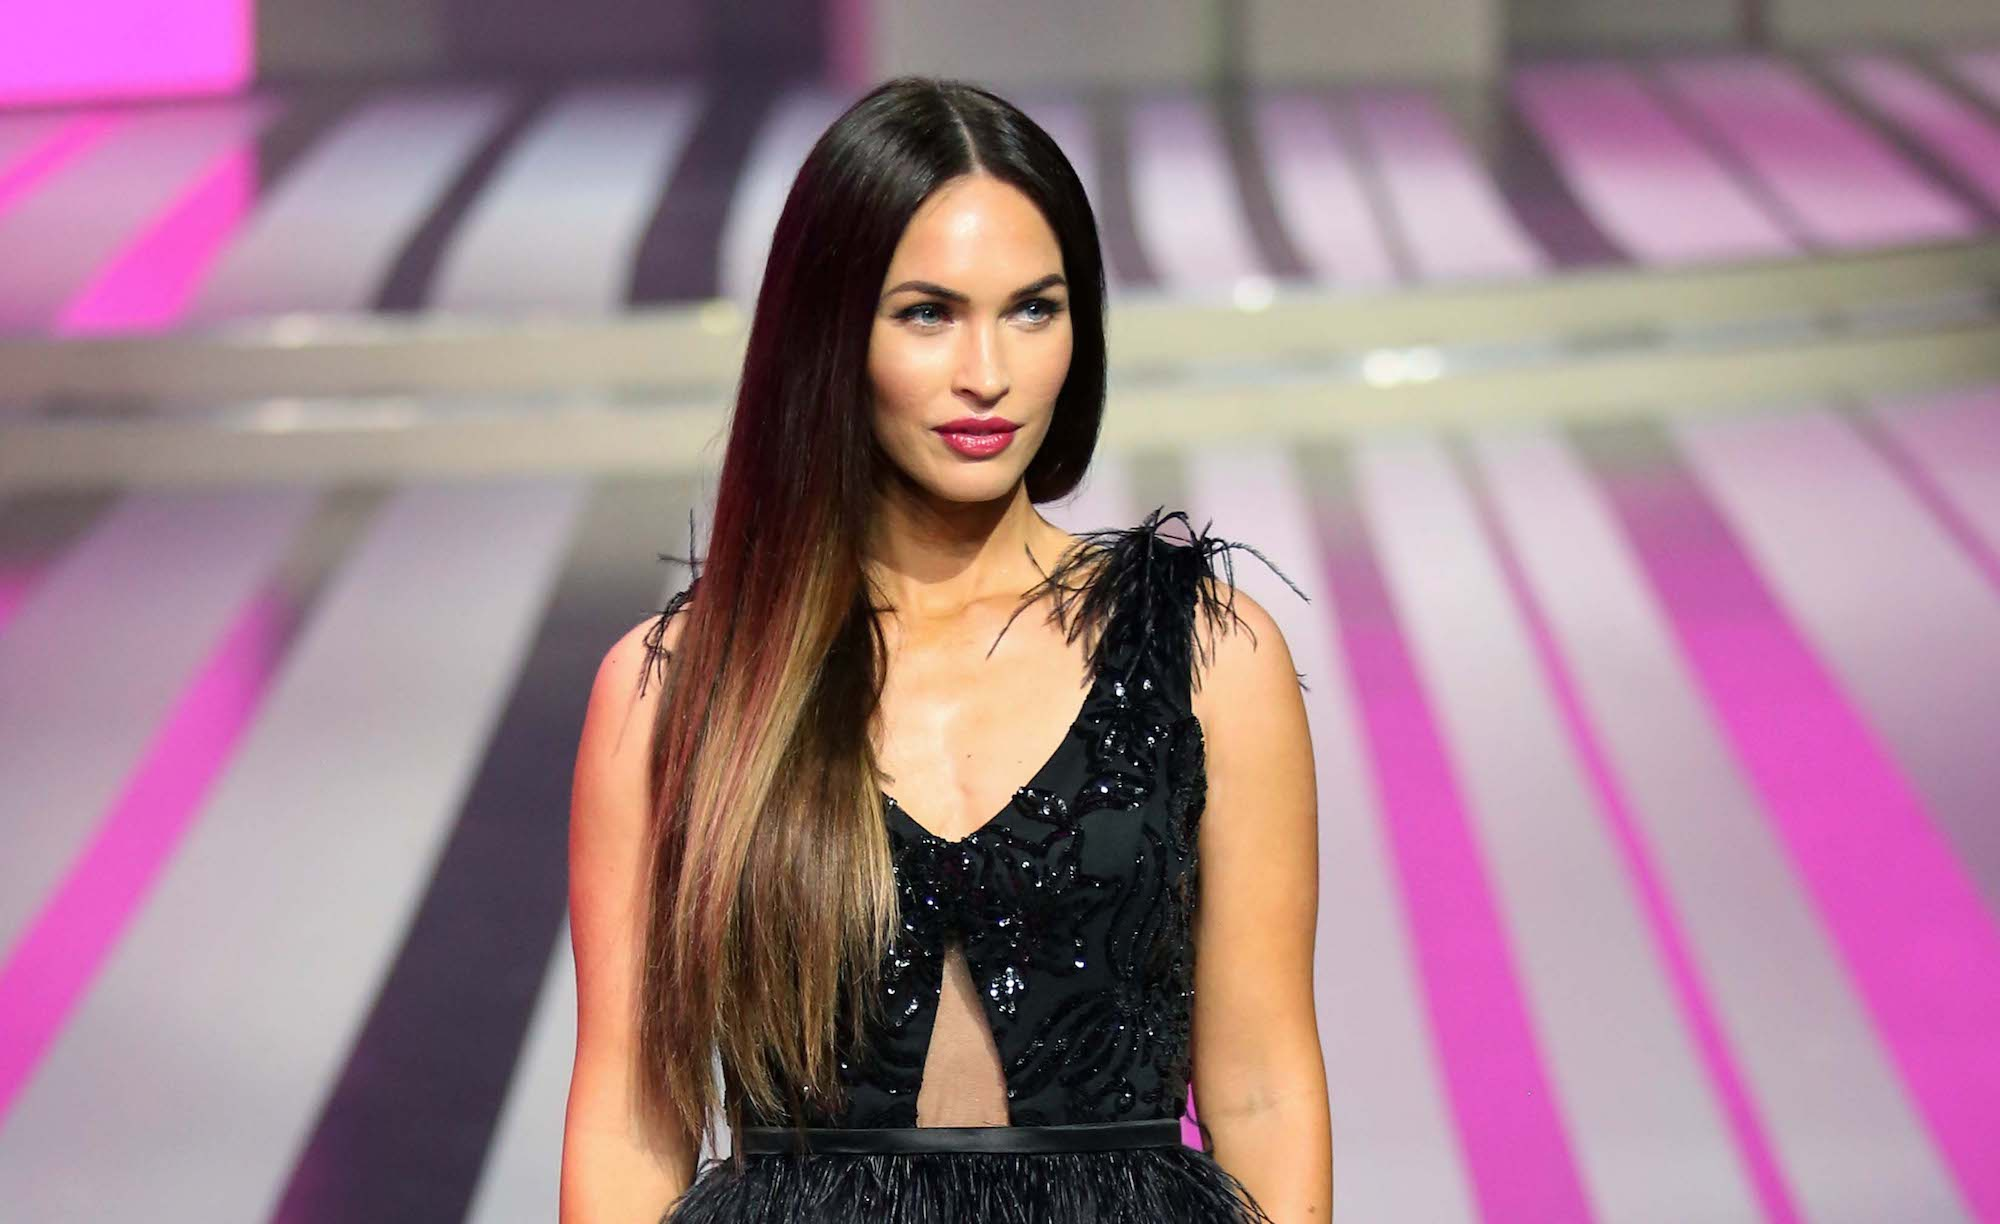 Megan Fox Is Being Mummy-Shamed For Her Sons' Hair